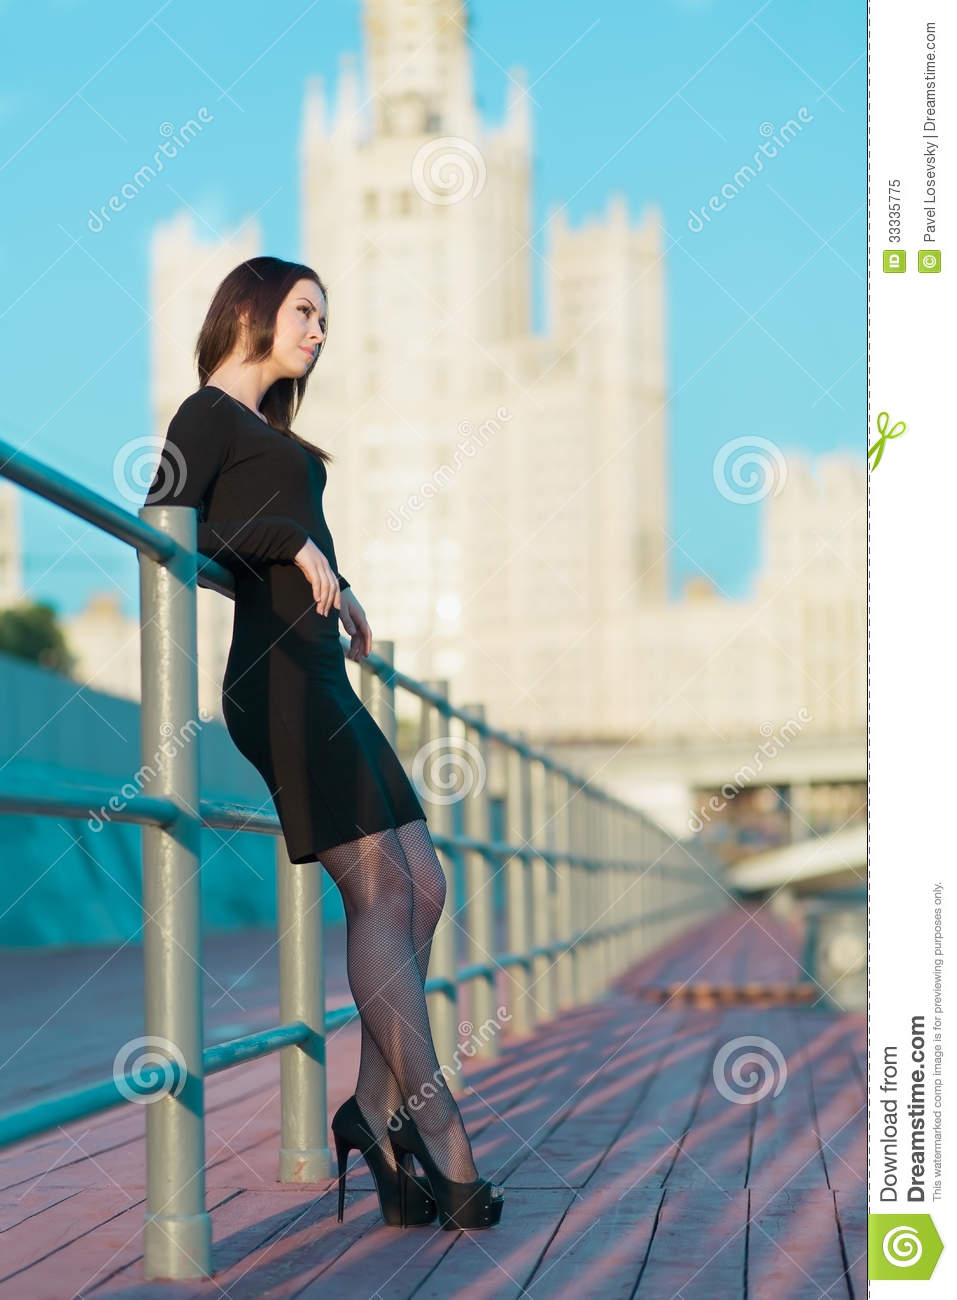 young woman in dress standing leaning on railing stock image image